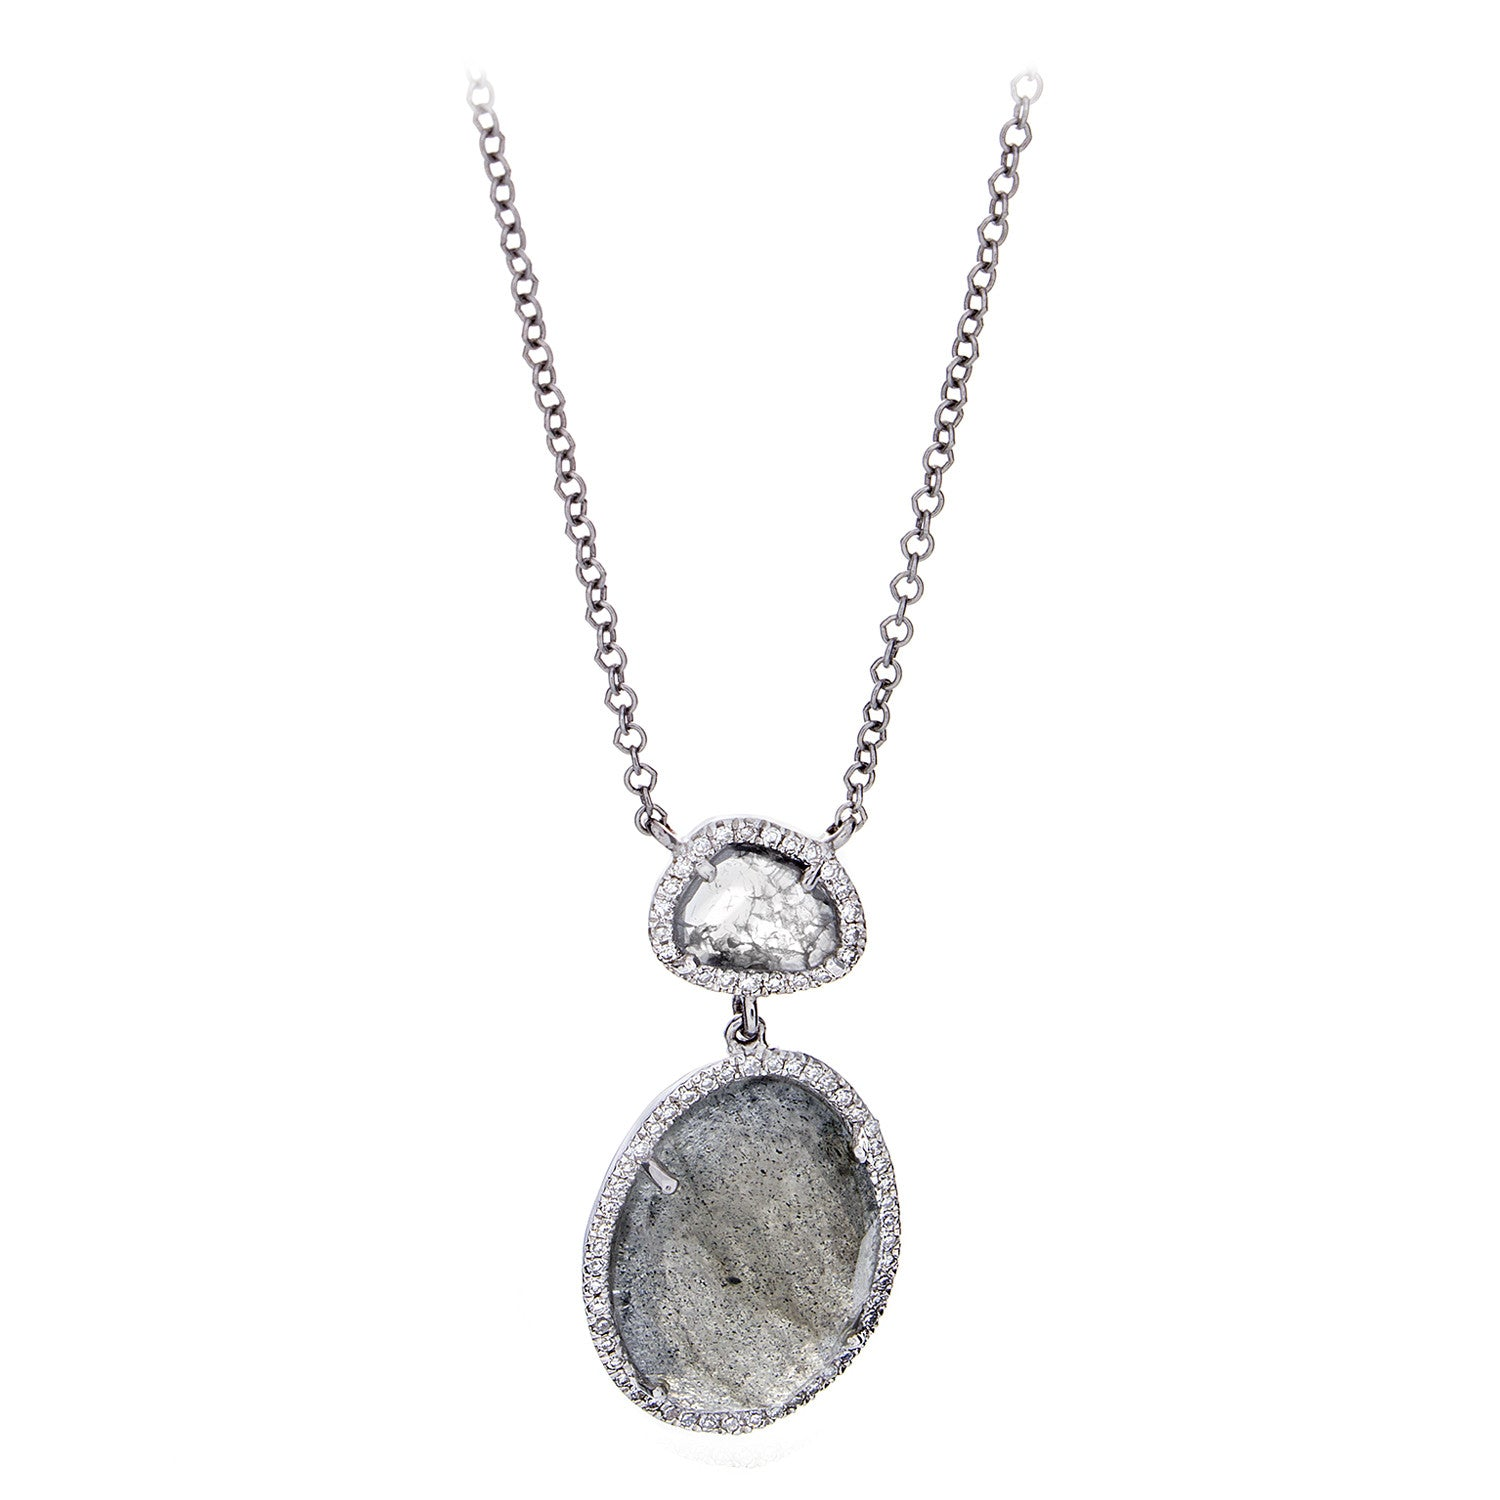 Labradorite, Sliced/Pave Diamonds & 14K White Gold Necklace - SOLD/CAN BE SPECIAL ORDERED WITH 4-6 WEEKS DELIVERY TIME FRAME